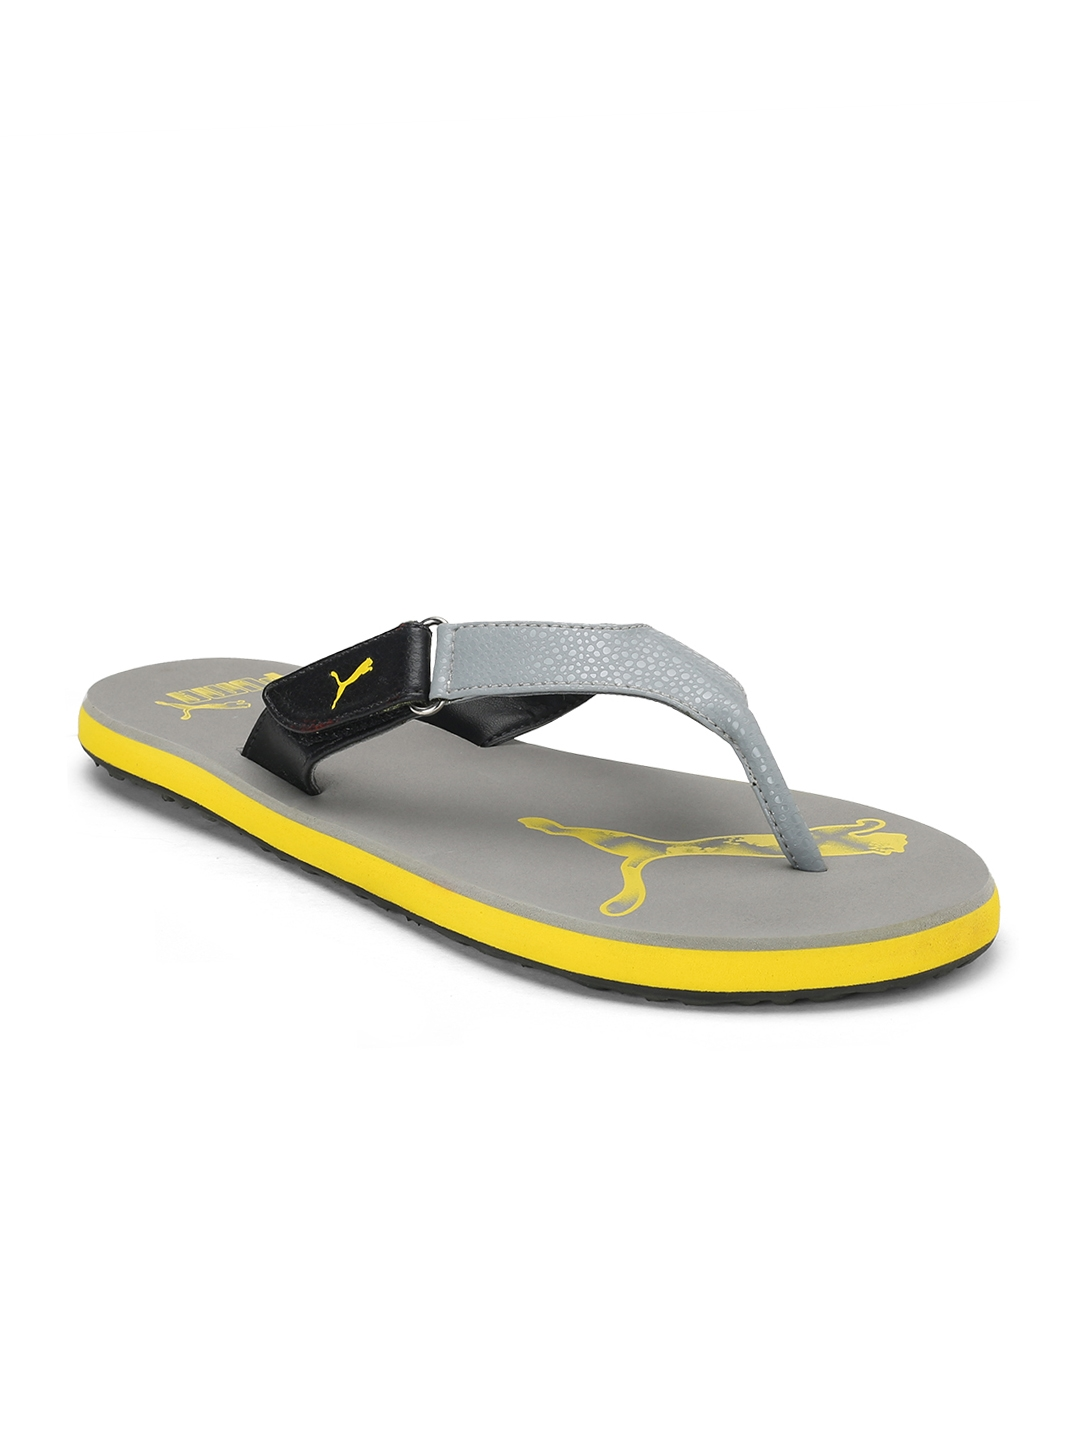 27a7b6ea90d1 Buy Puma Men Grey Breeze 2 NG IDP Flip Flops - Flip Flops for Men ...